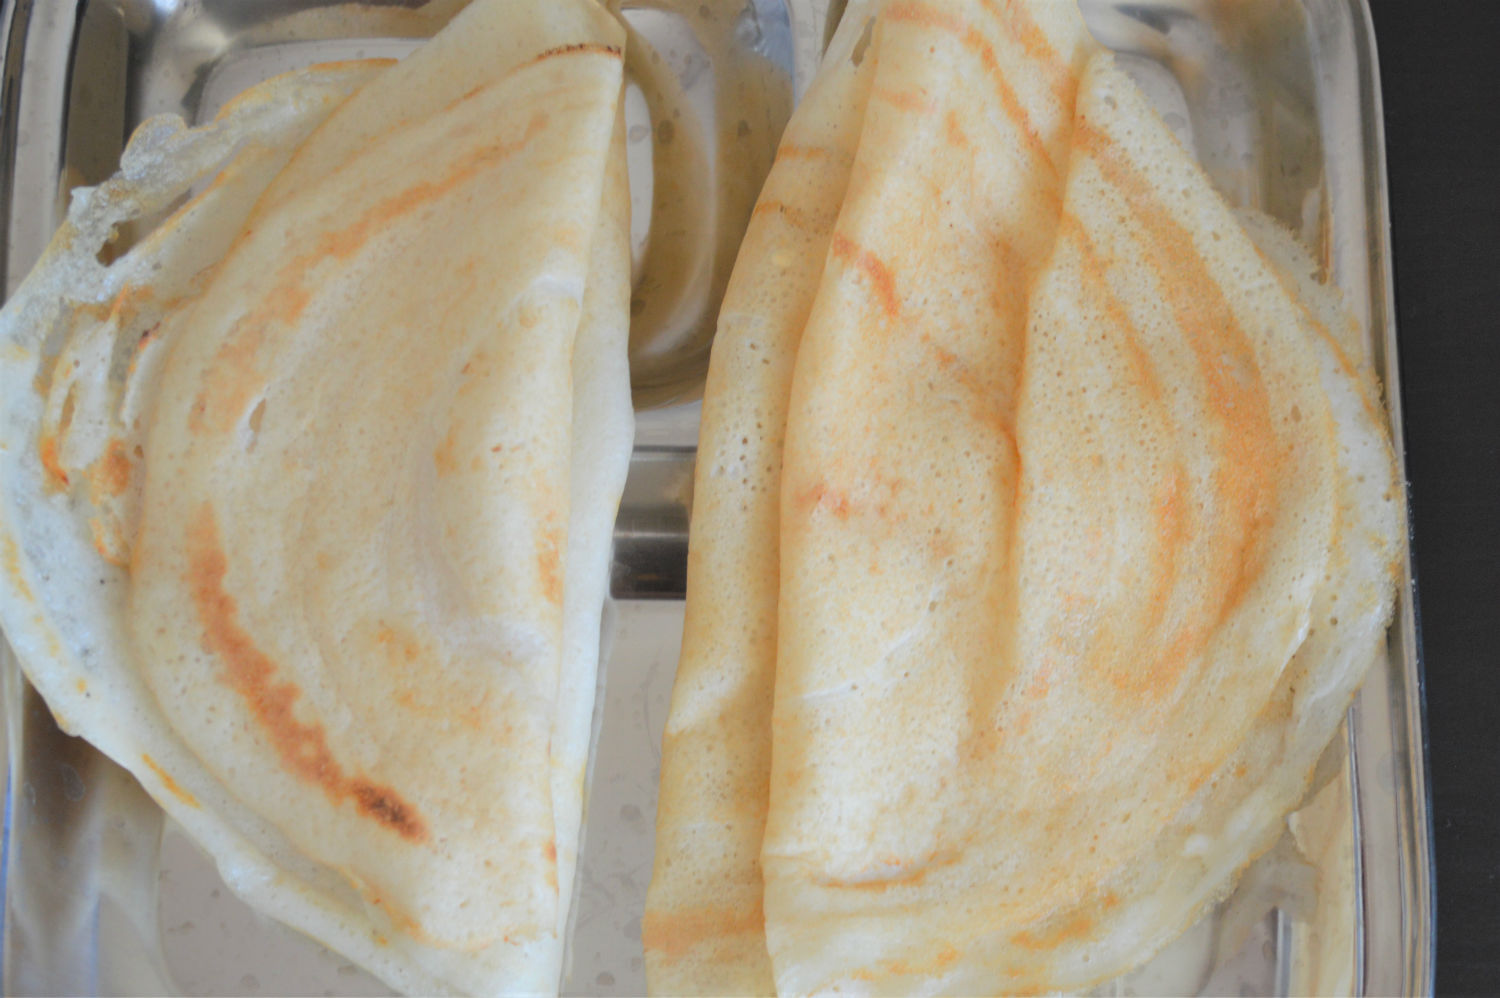 Dosas made with idli batter